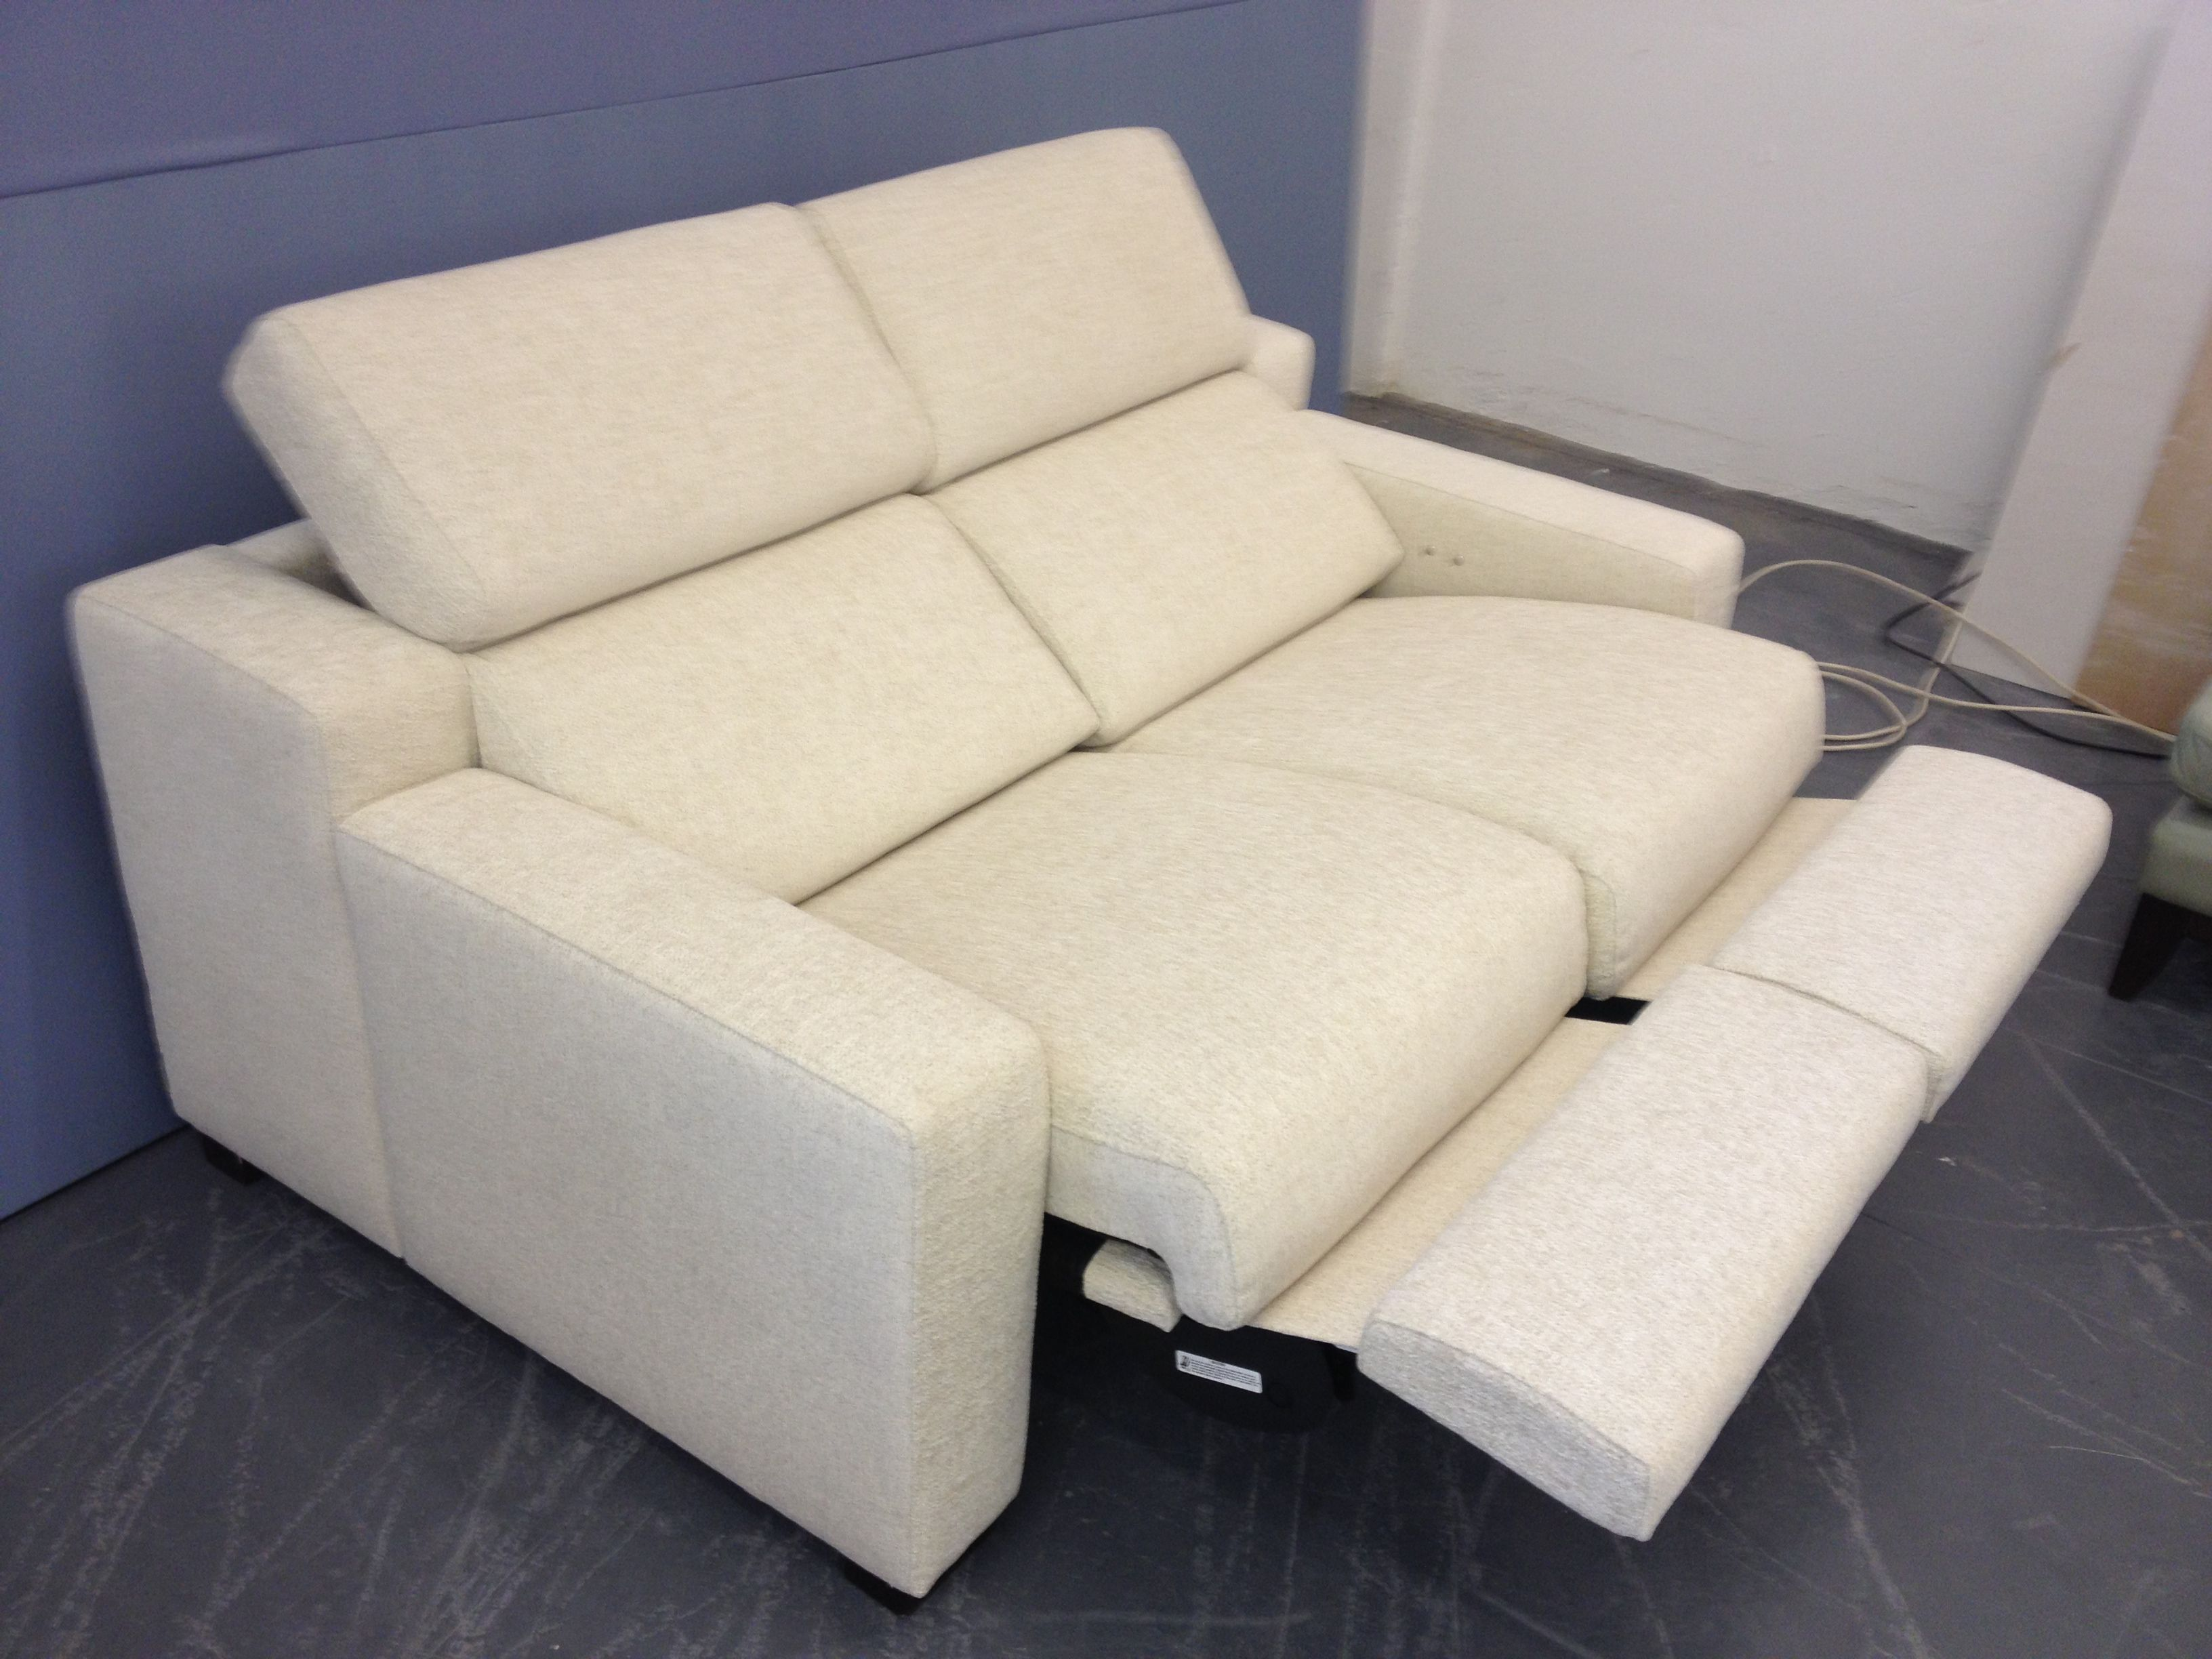 Lotus reclining sofa with 15 cm arms measures 155 cm perfect